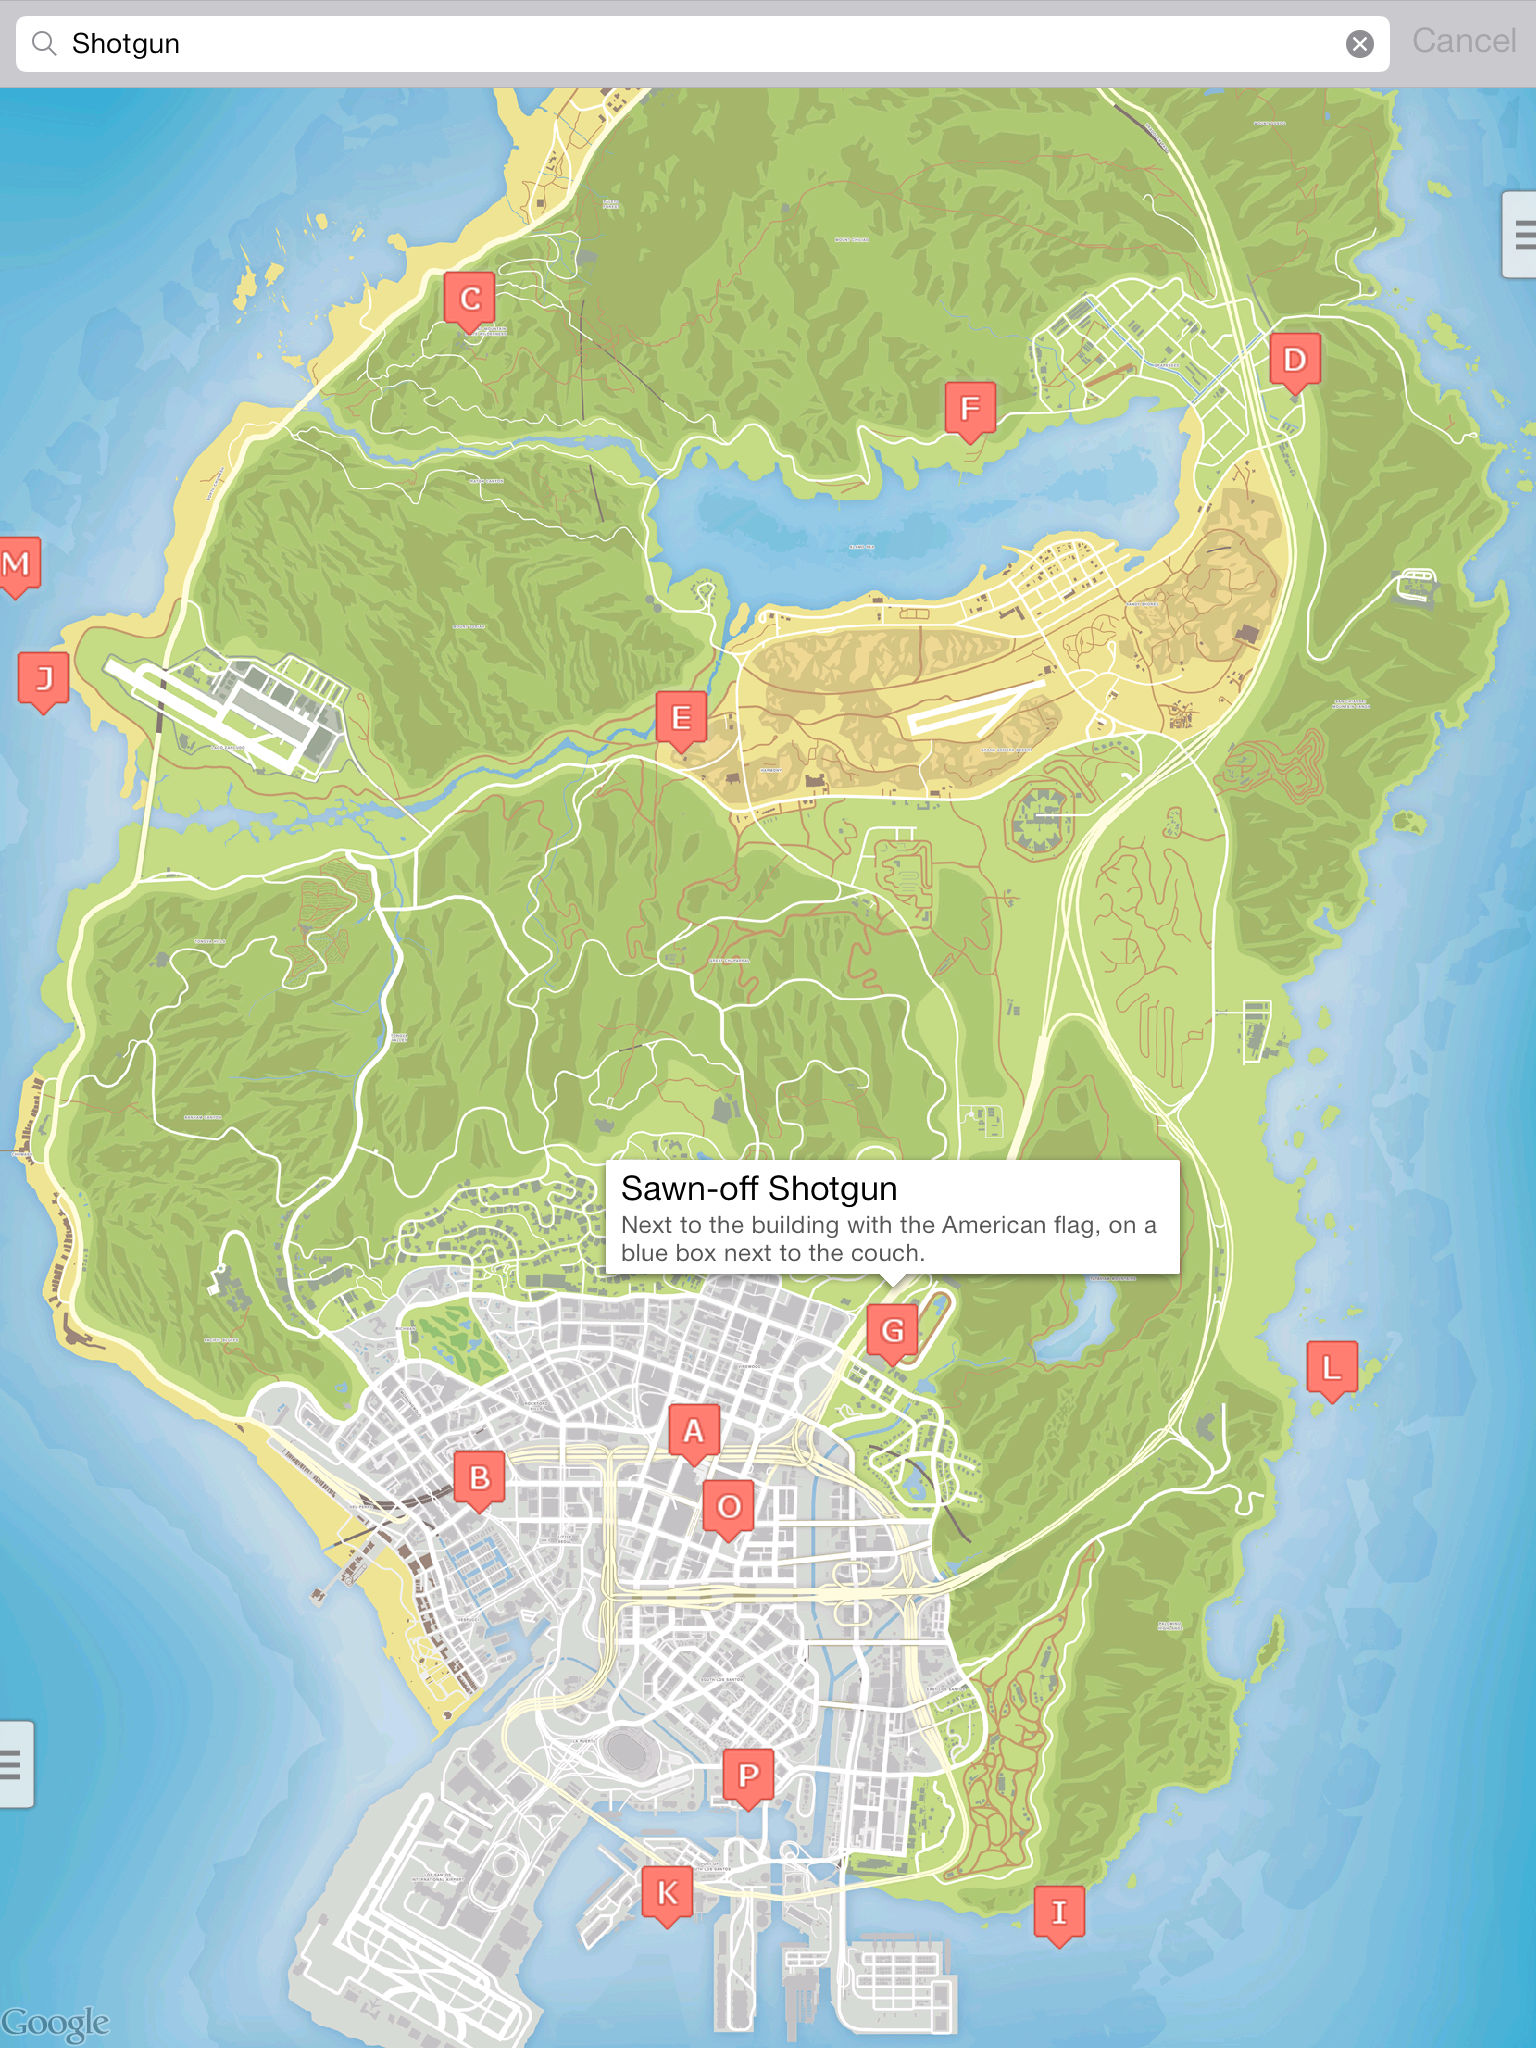 Gta 5 Cars Location Map : location, Armored, Locations, Supercars, Gallery